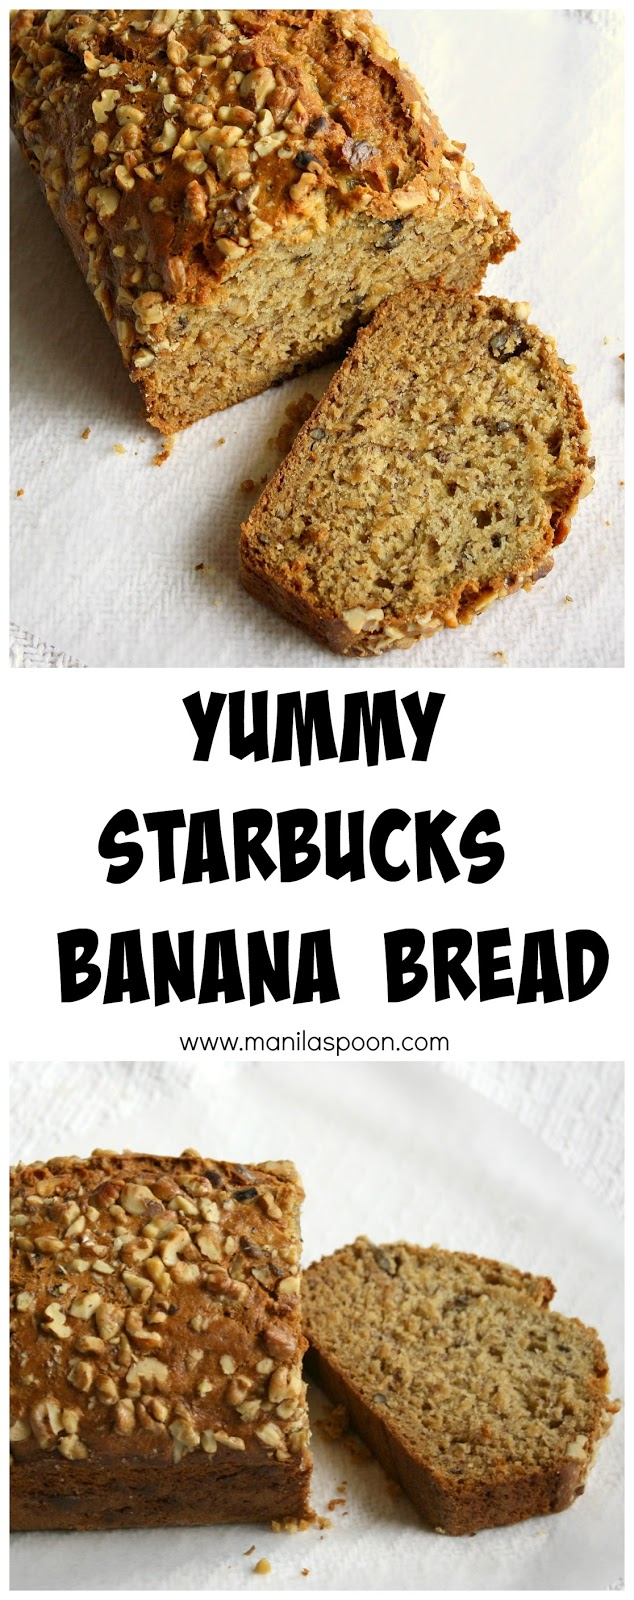 Starbucks Banana Walnut Bread Recipe - now all you need is some coffee or tea to enjoy this moist and scrumptious bread!